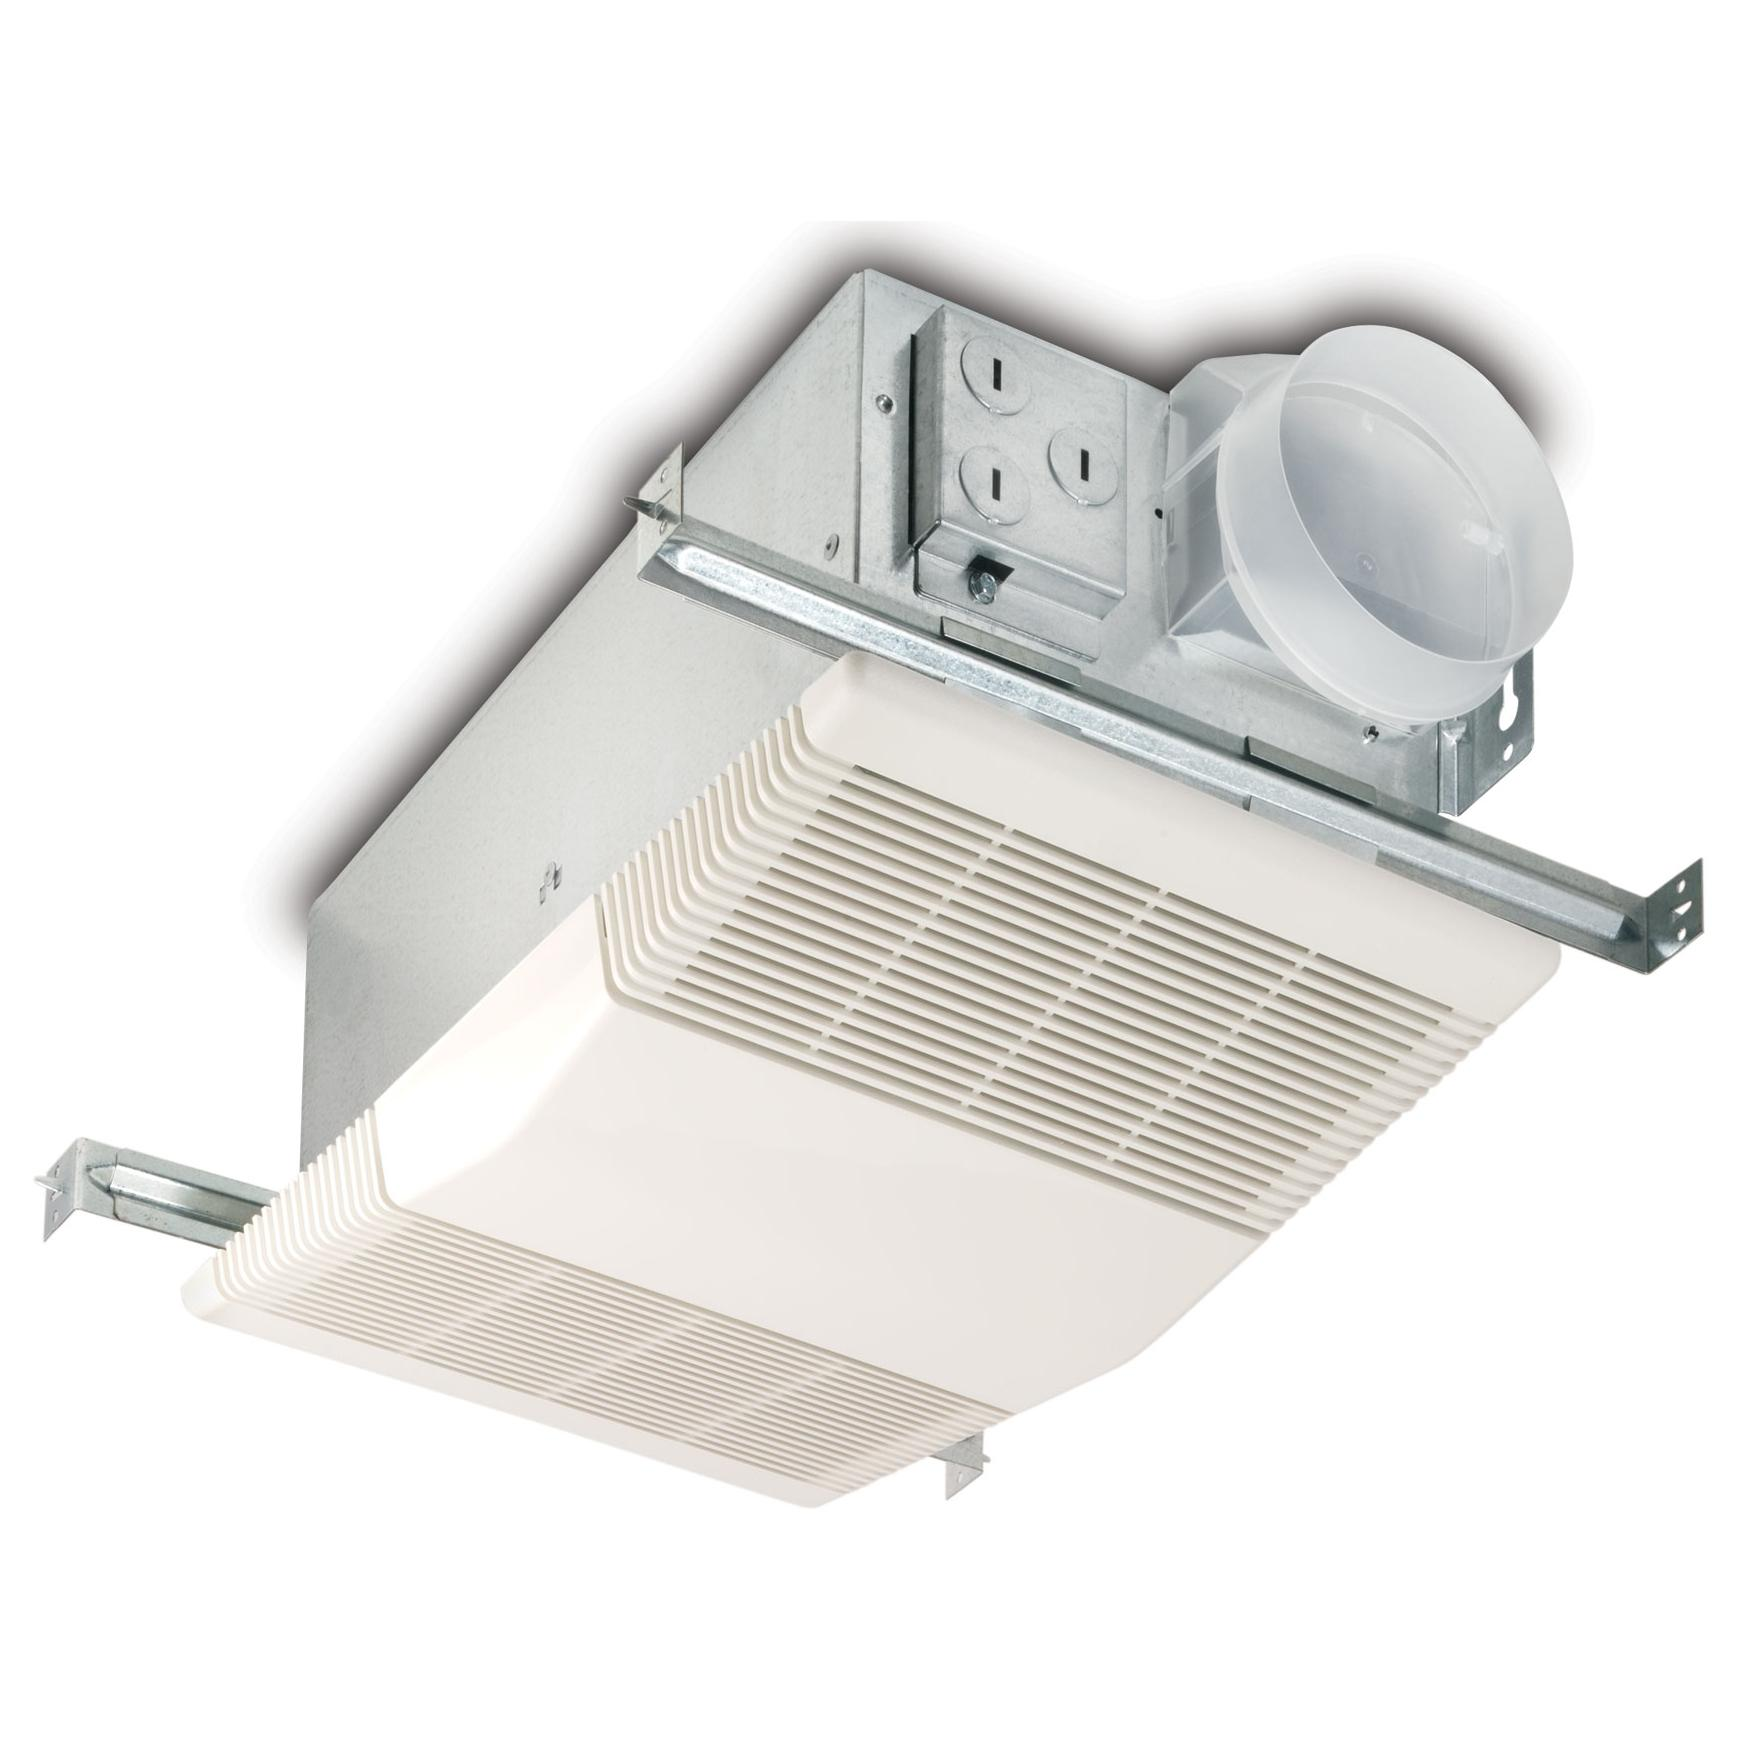 Broan Heater and Light Combo for Bathroom and Home 1300-Watts